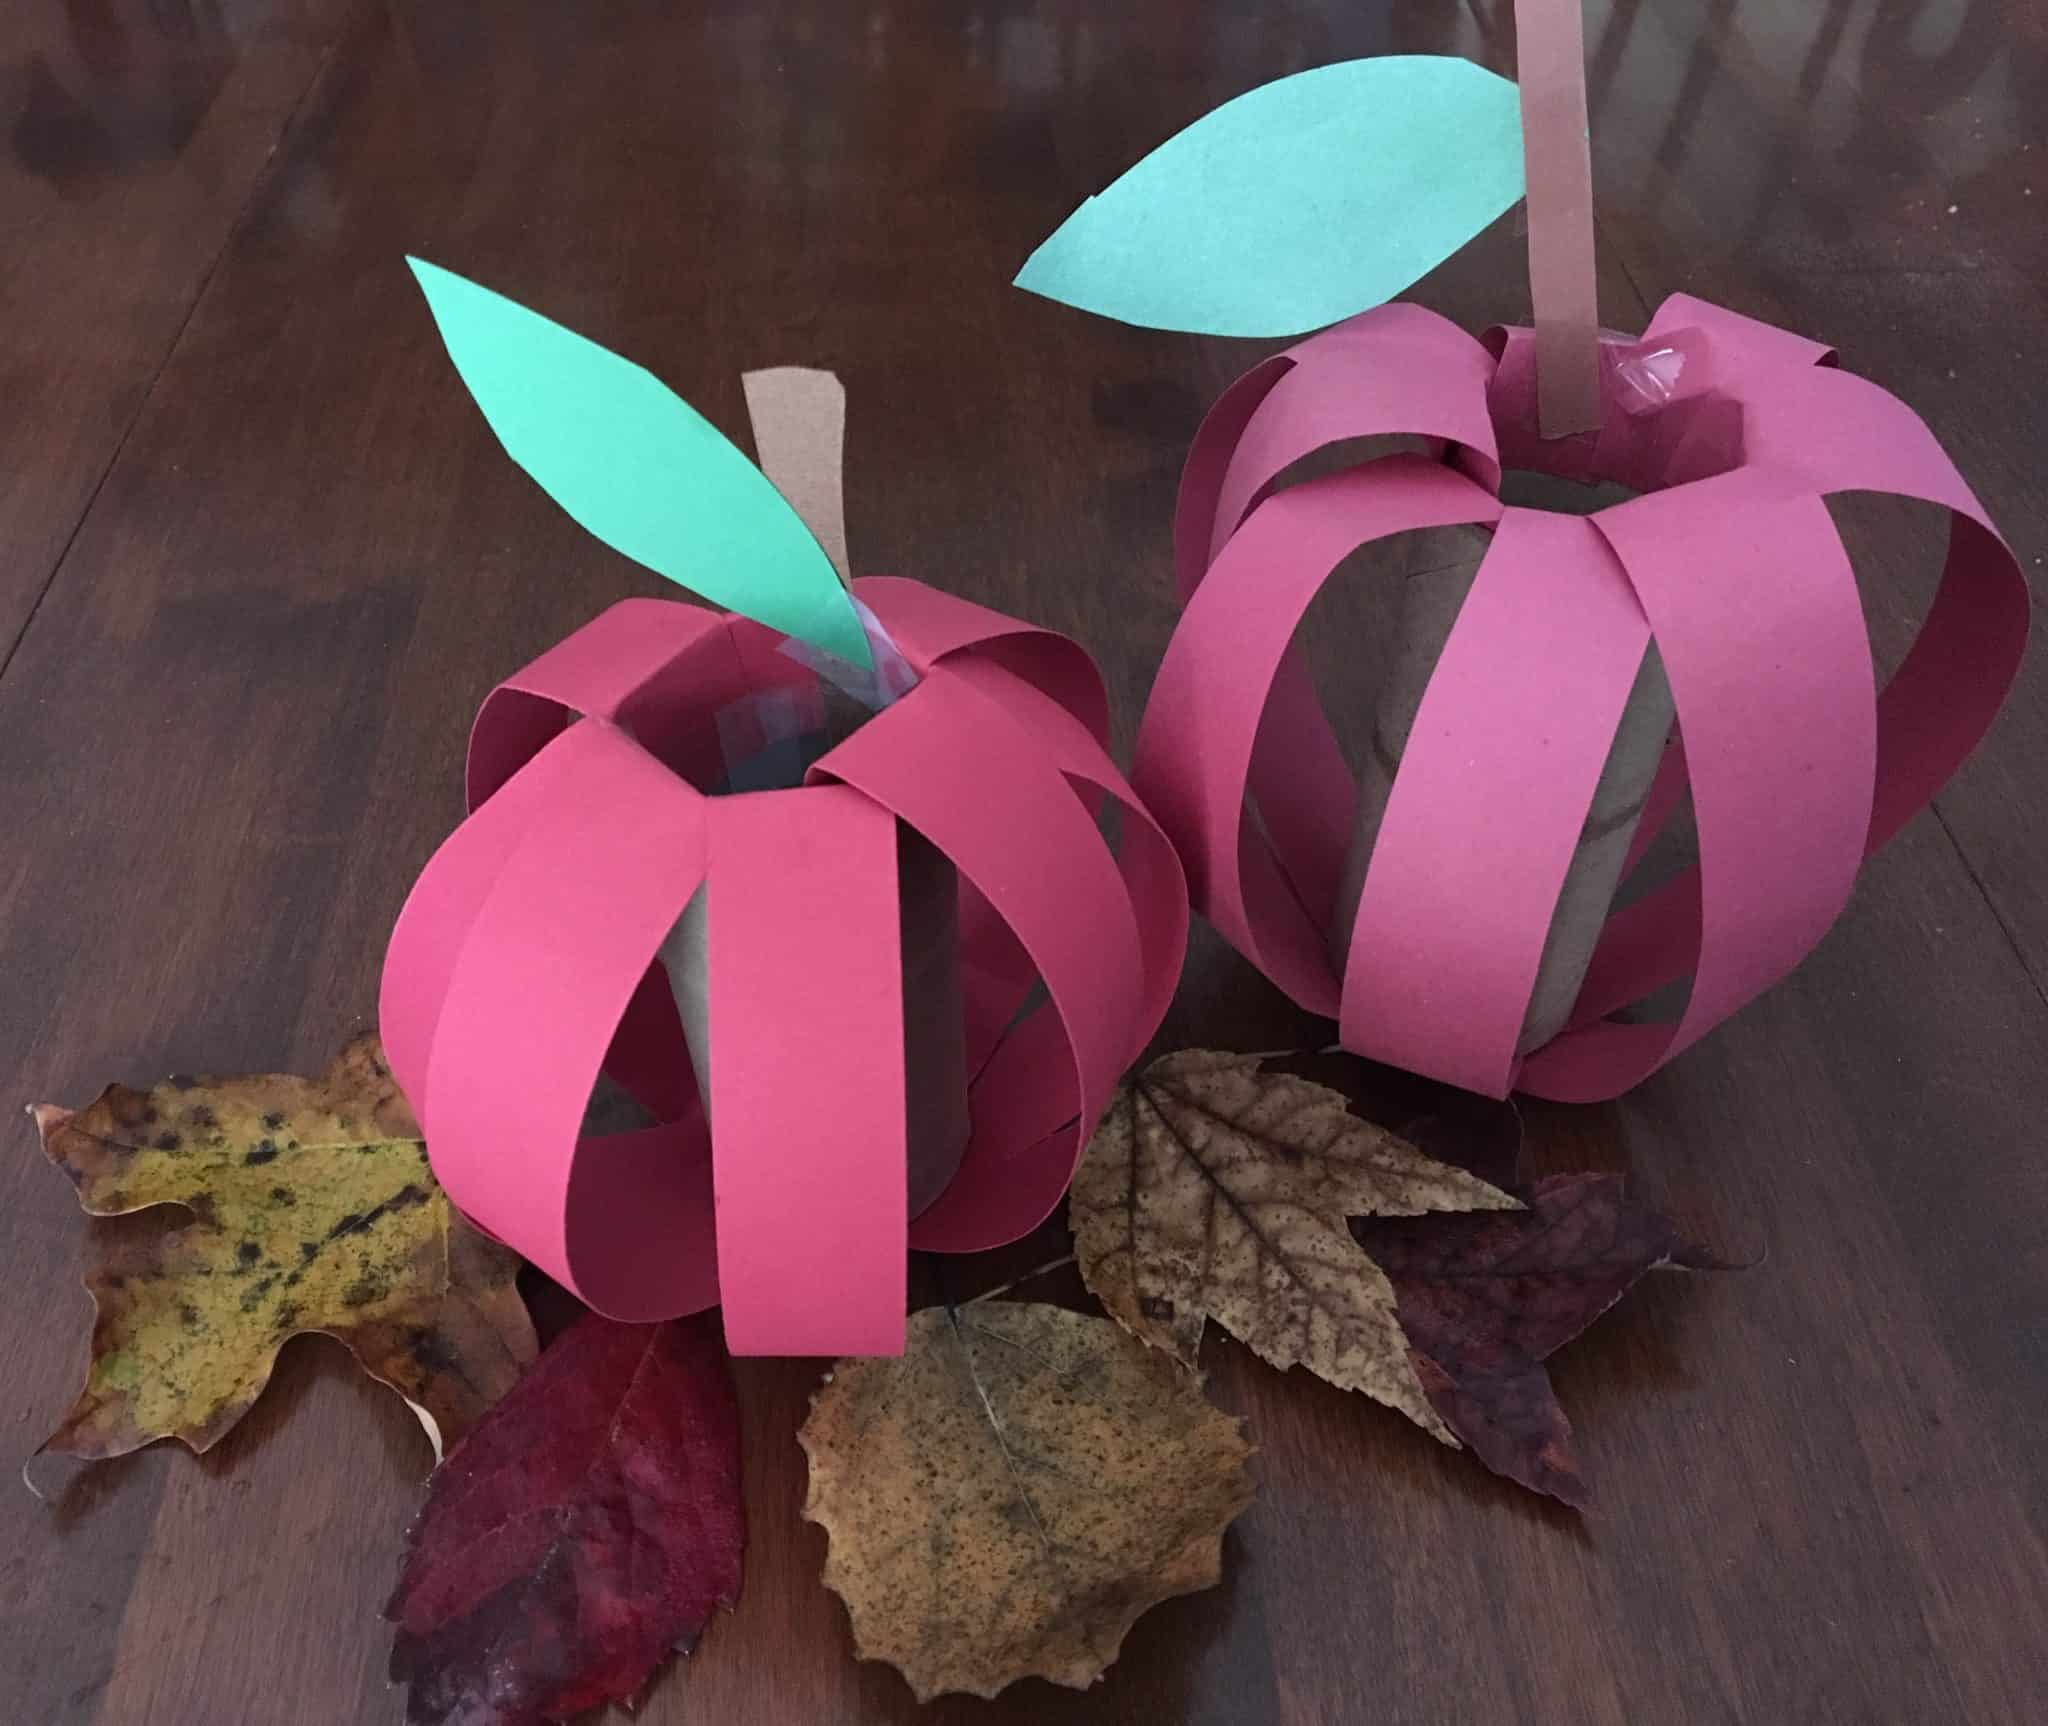 FALL APPLE CRAFT USING A TOILET PAPER ROLL - ALSO SUITABLE ...